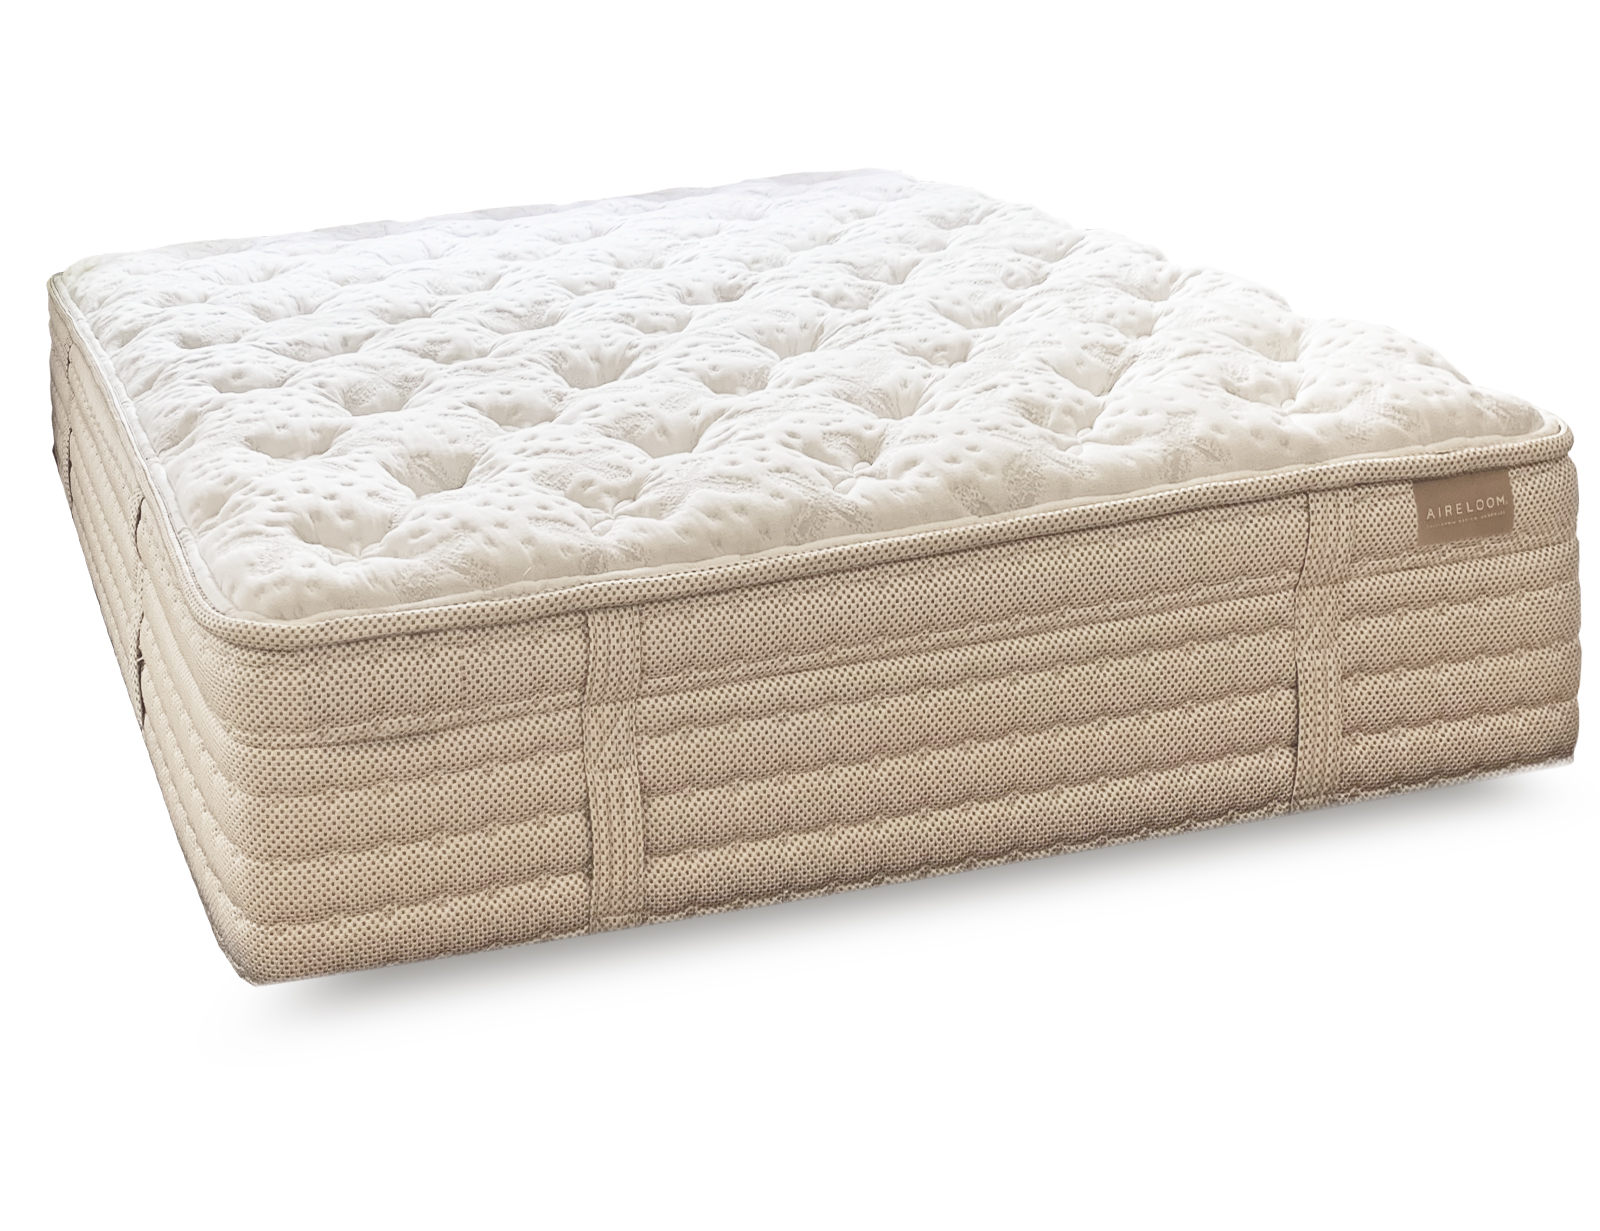 Aireloom Mattress Clearance Sale Luxetop Firm